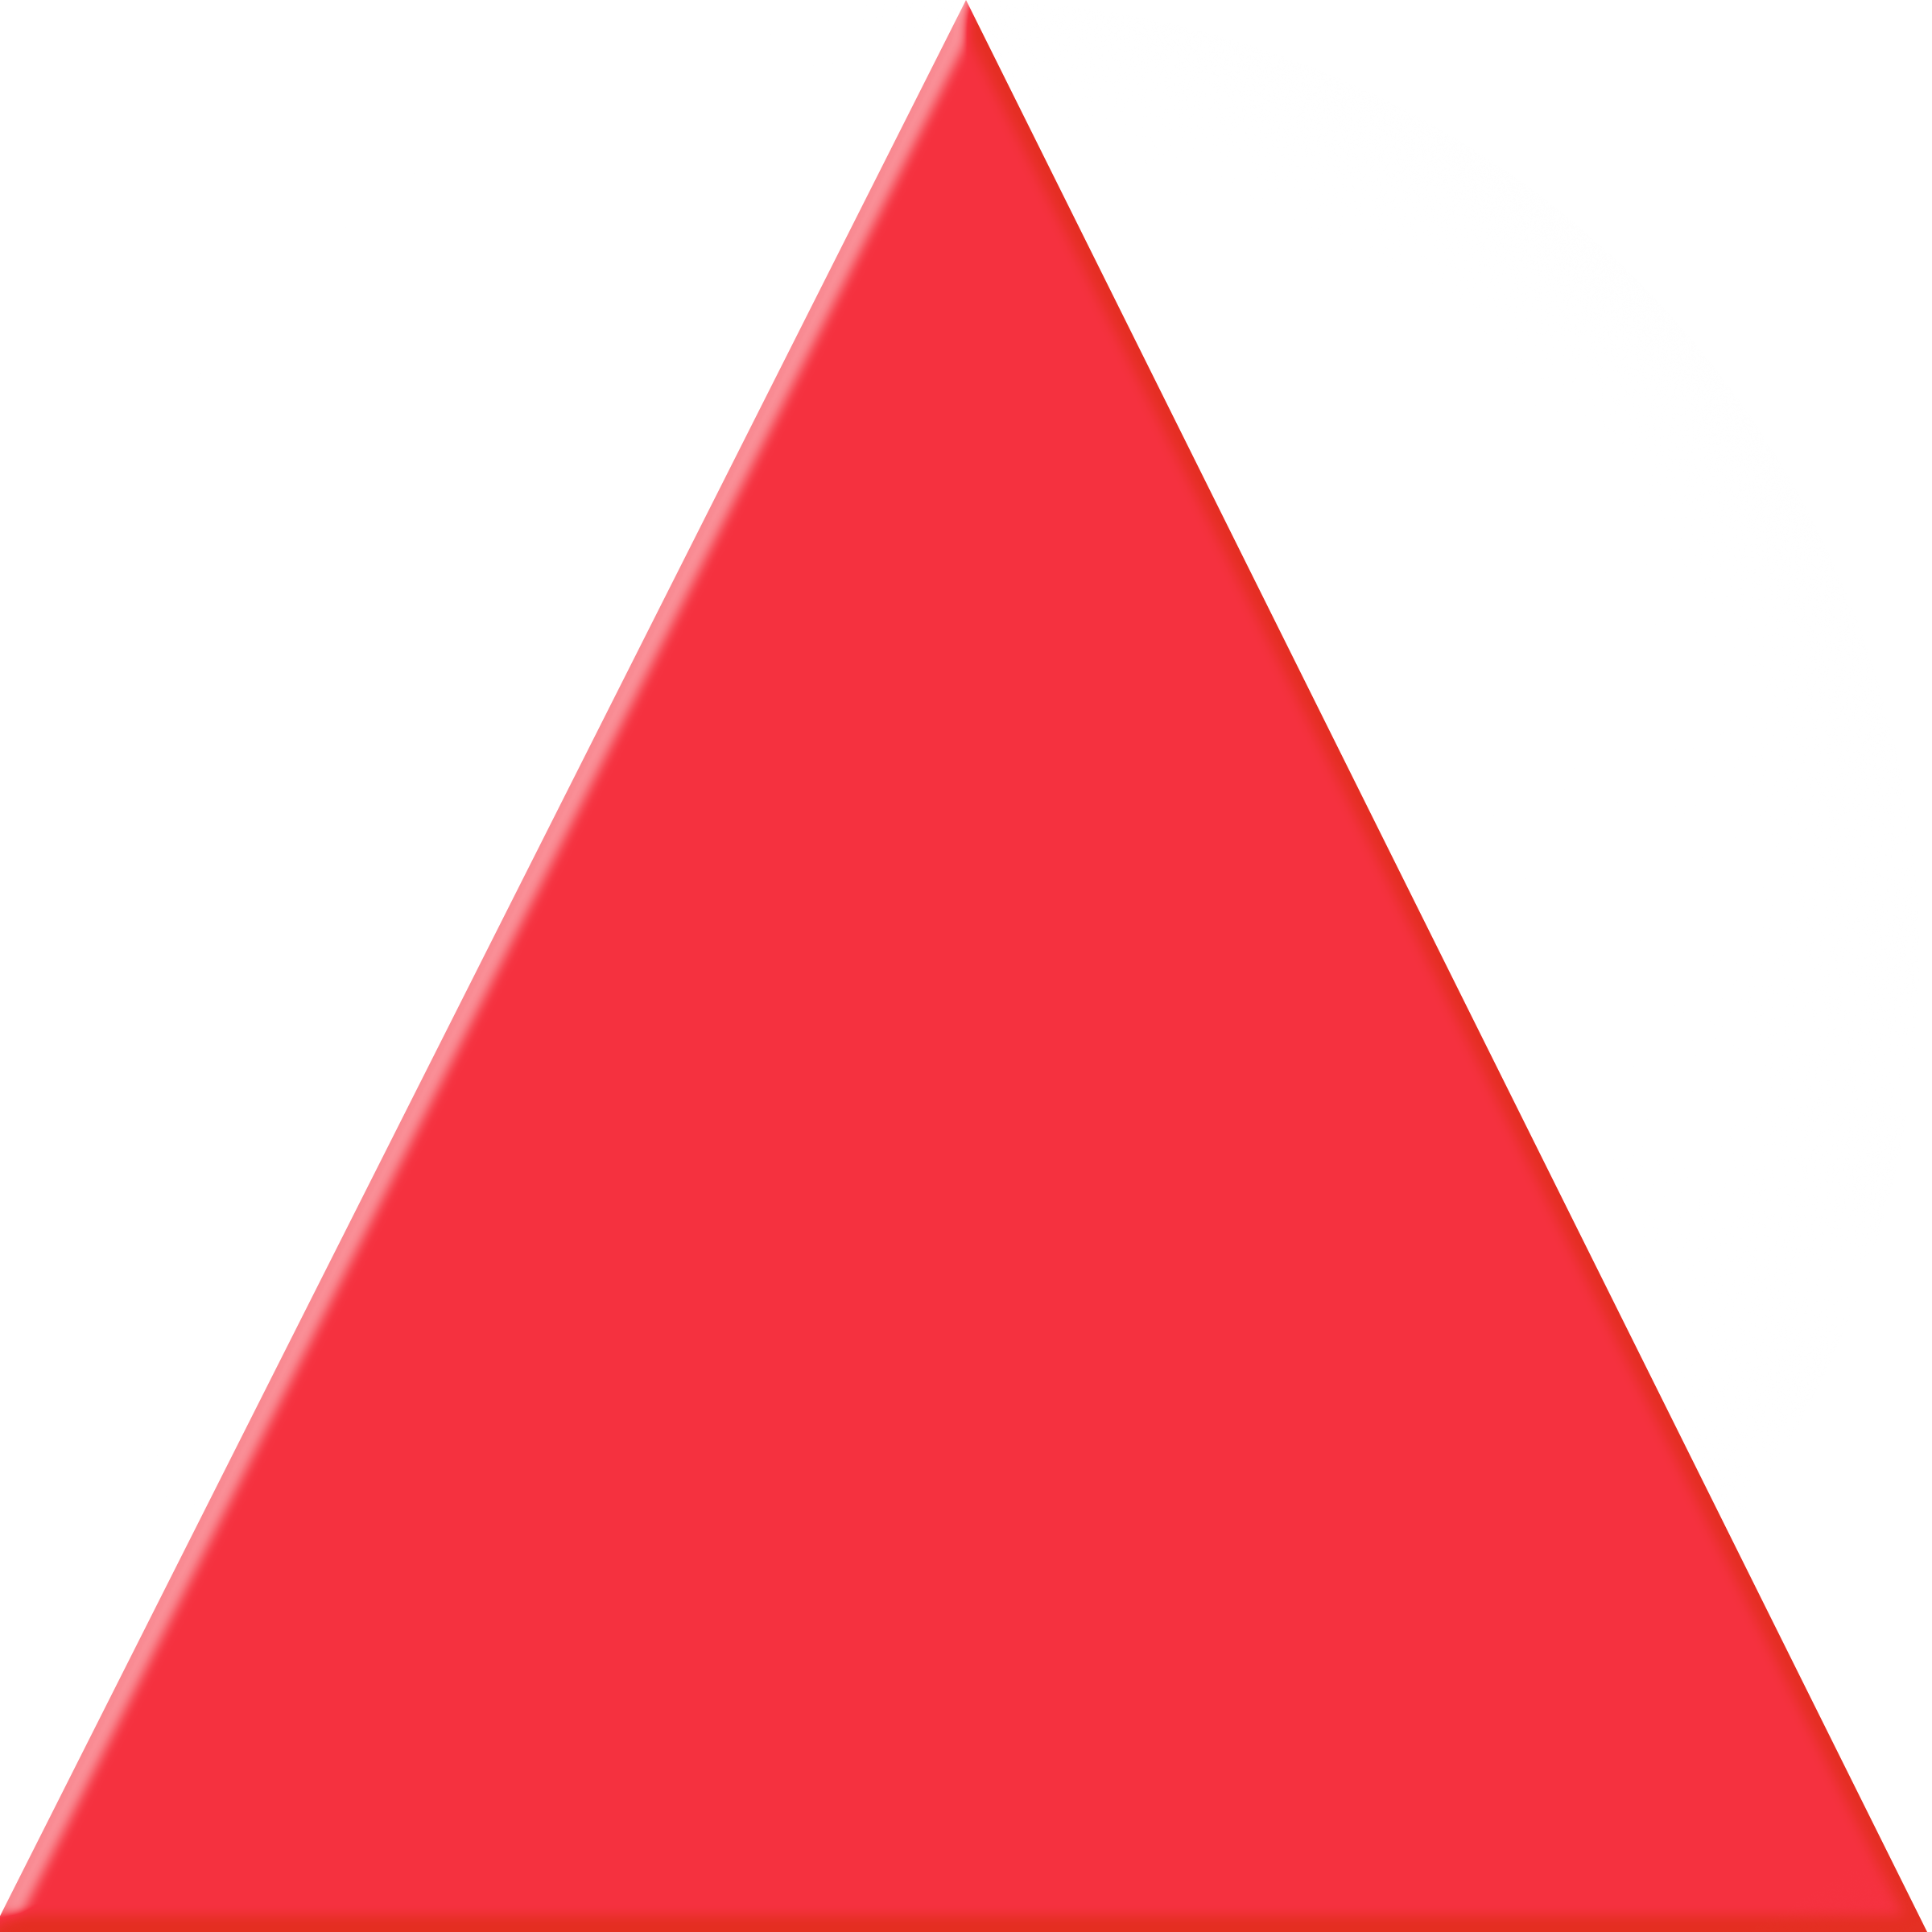 Upside Down Triangle Meaning >> Red triangle car Logos